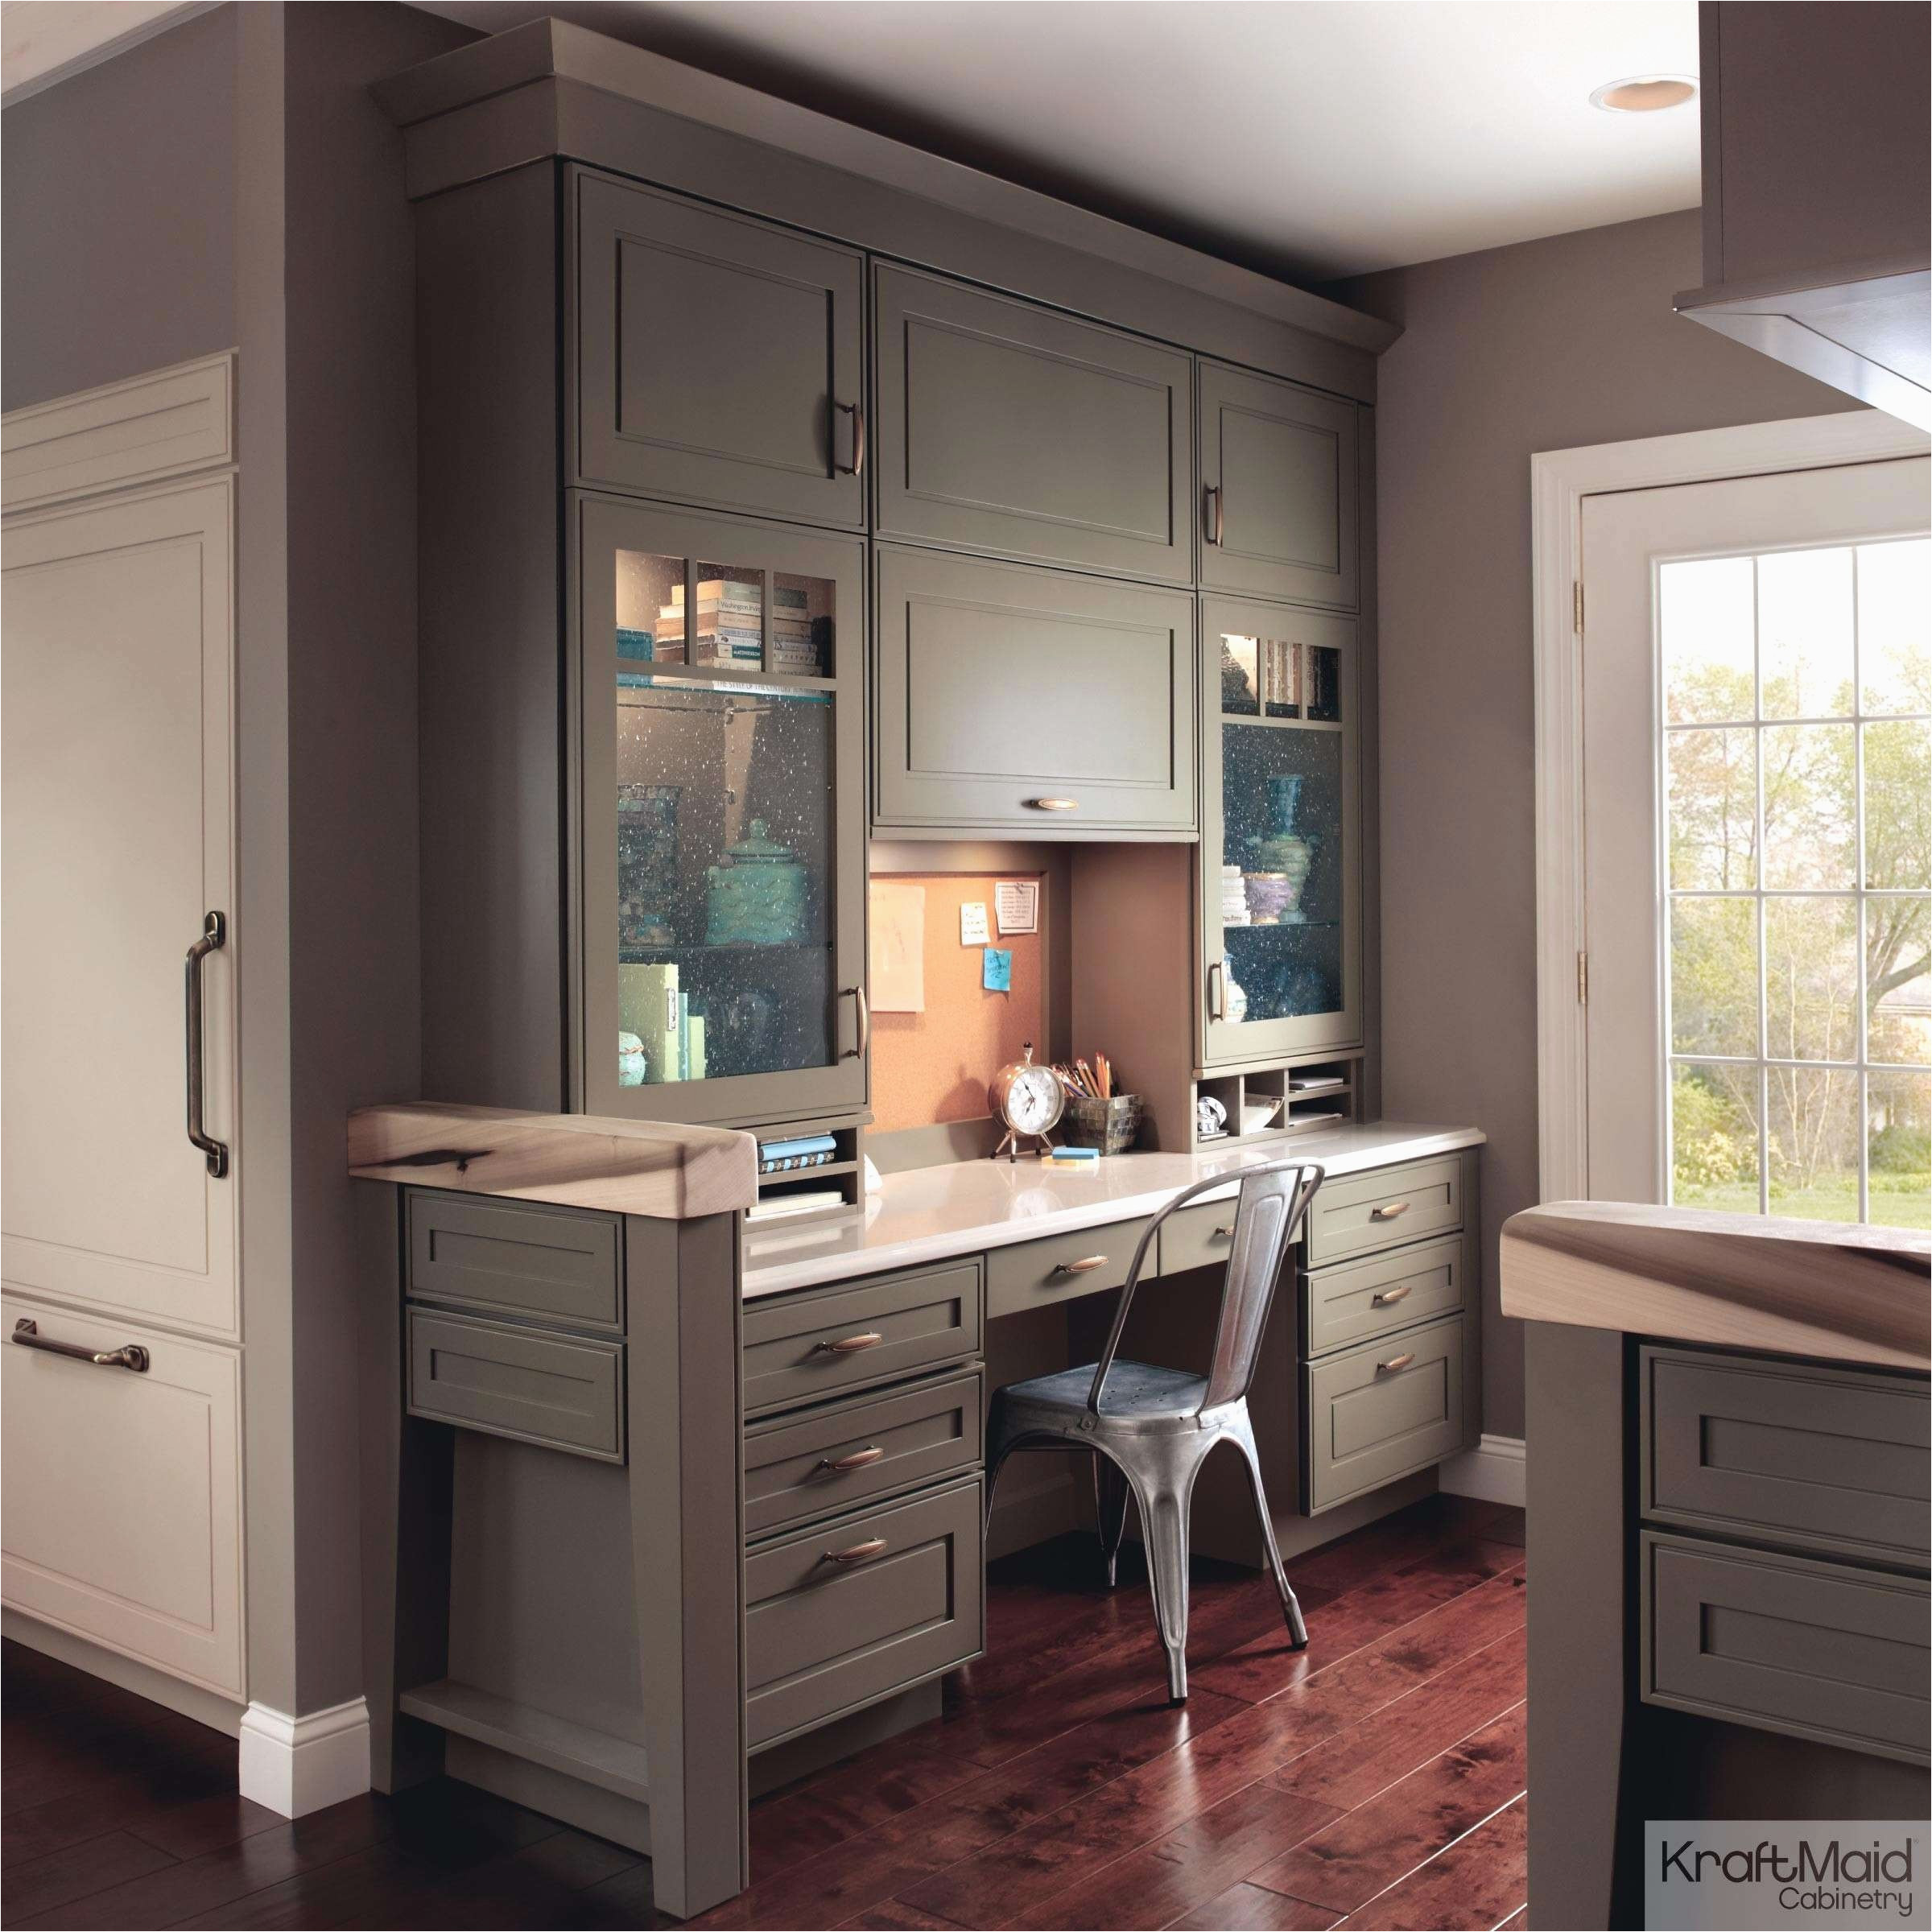 blind corner kitchen cabinet organizers prepossessing blind corner kitchen cabinet organizers on 32 awesome kitchen